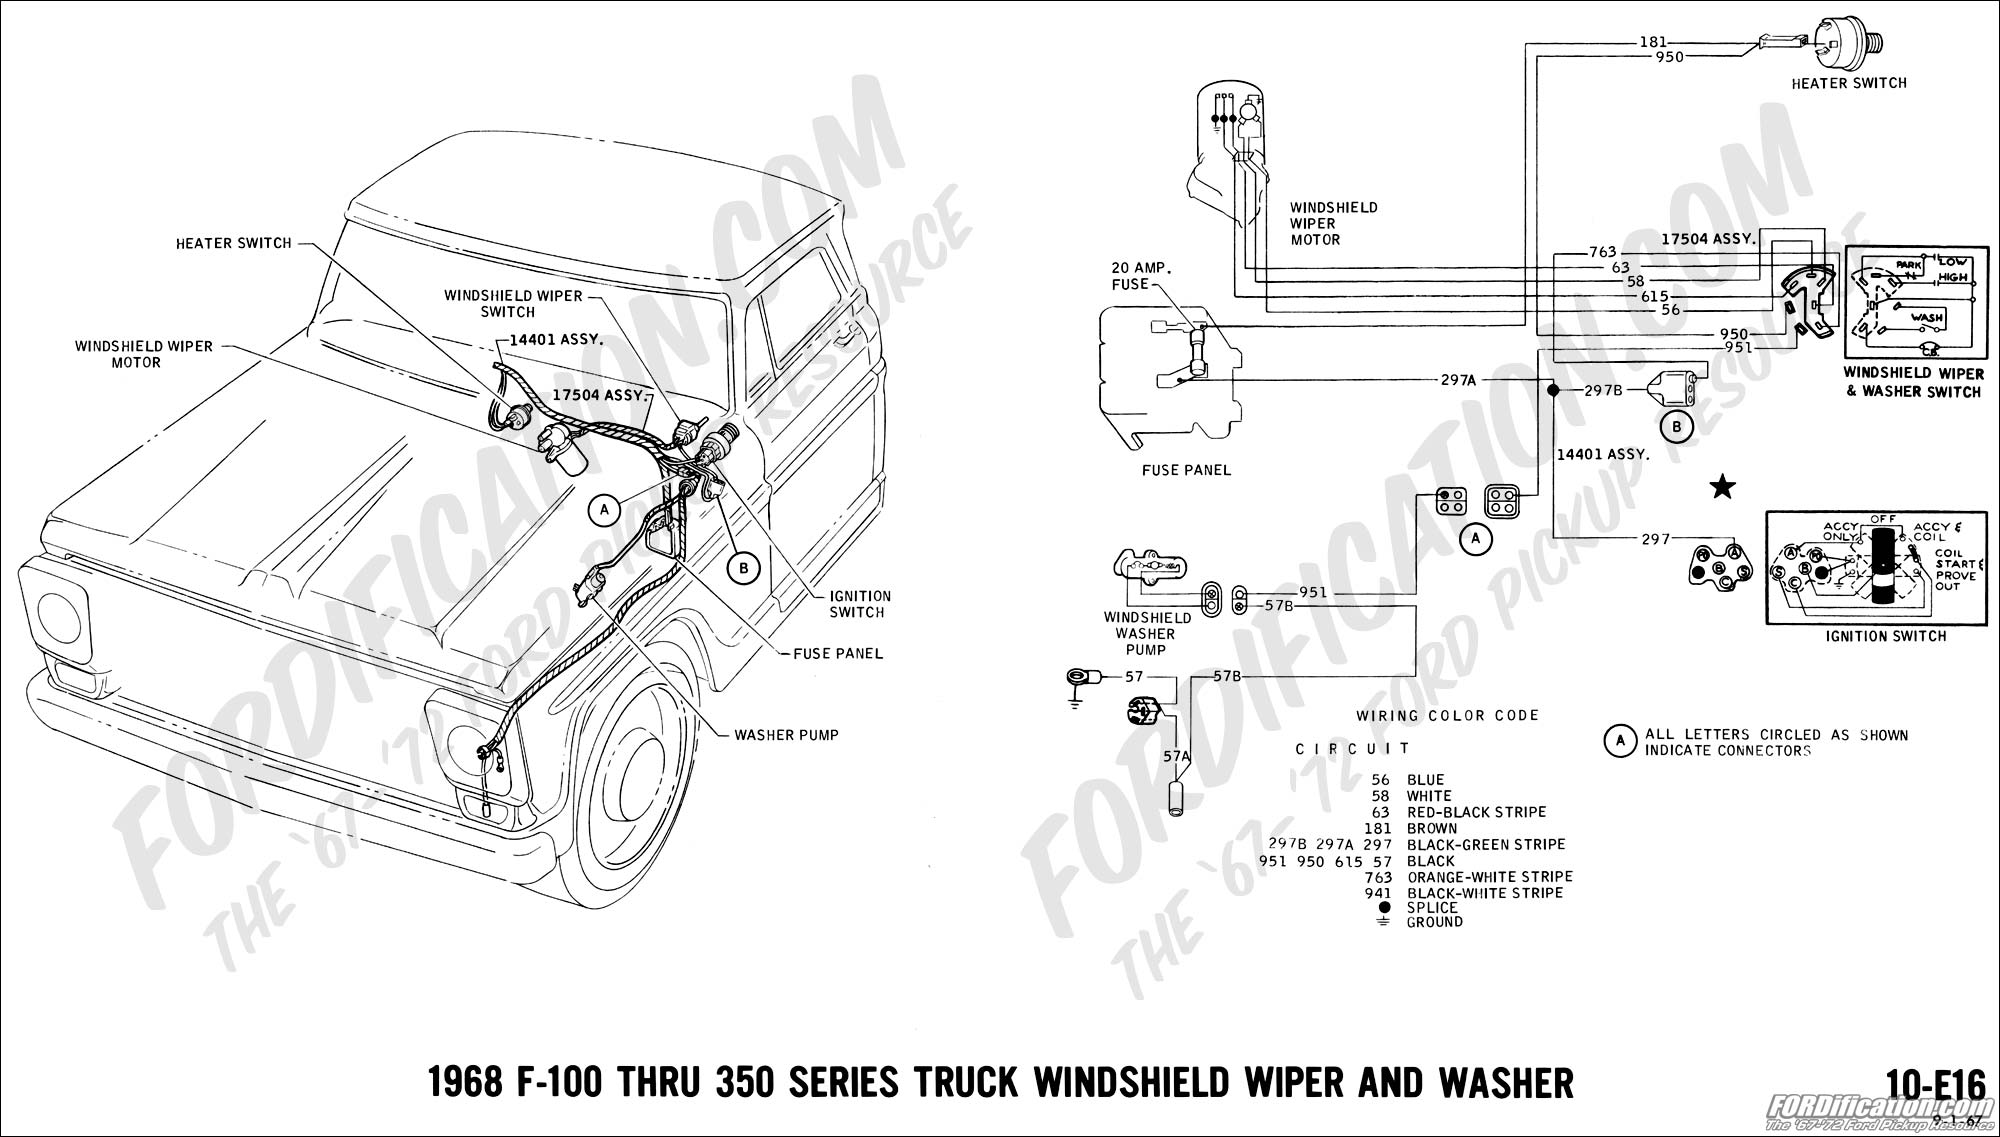 hight resolution of 1968 chevy c10 horn wiring diagram wiring diagrams scematic rh 85 jessicadonath de ford f 250 wiring diagram ford f 250 4x4 wiring diagram